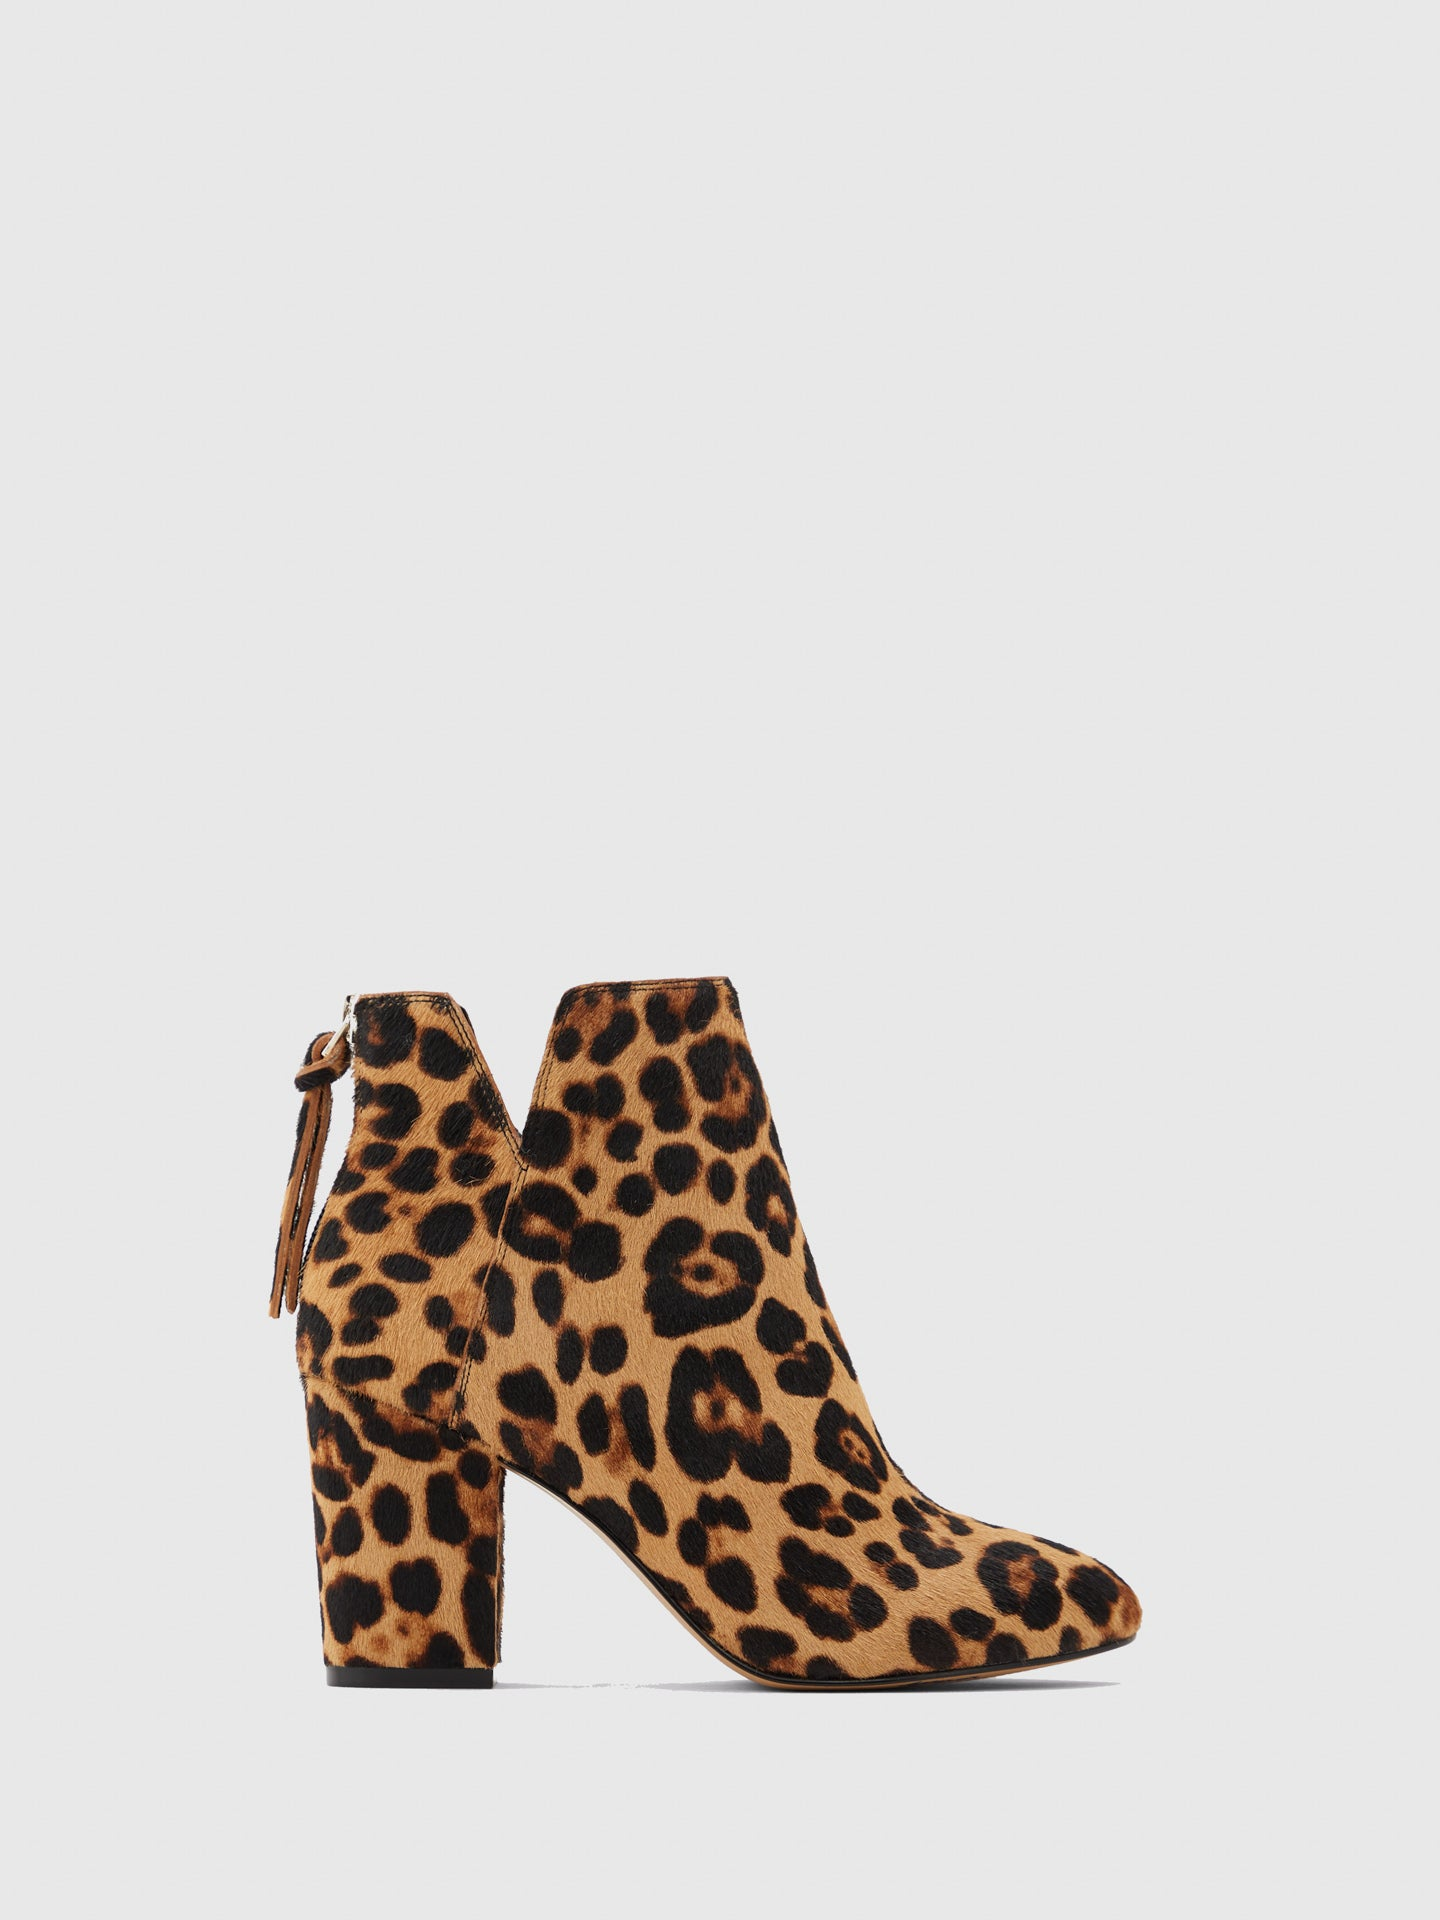 Aldo Multicolor Zip Up Ankle Boots